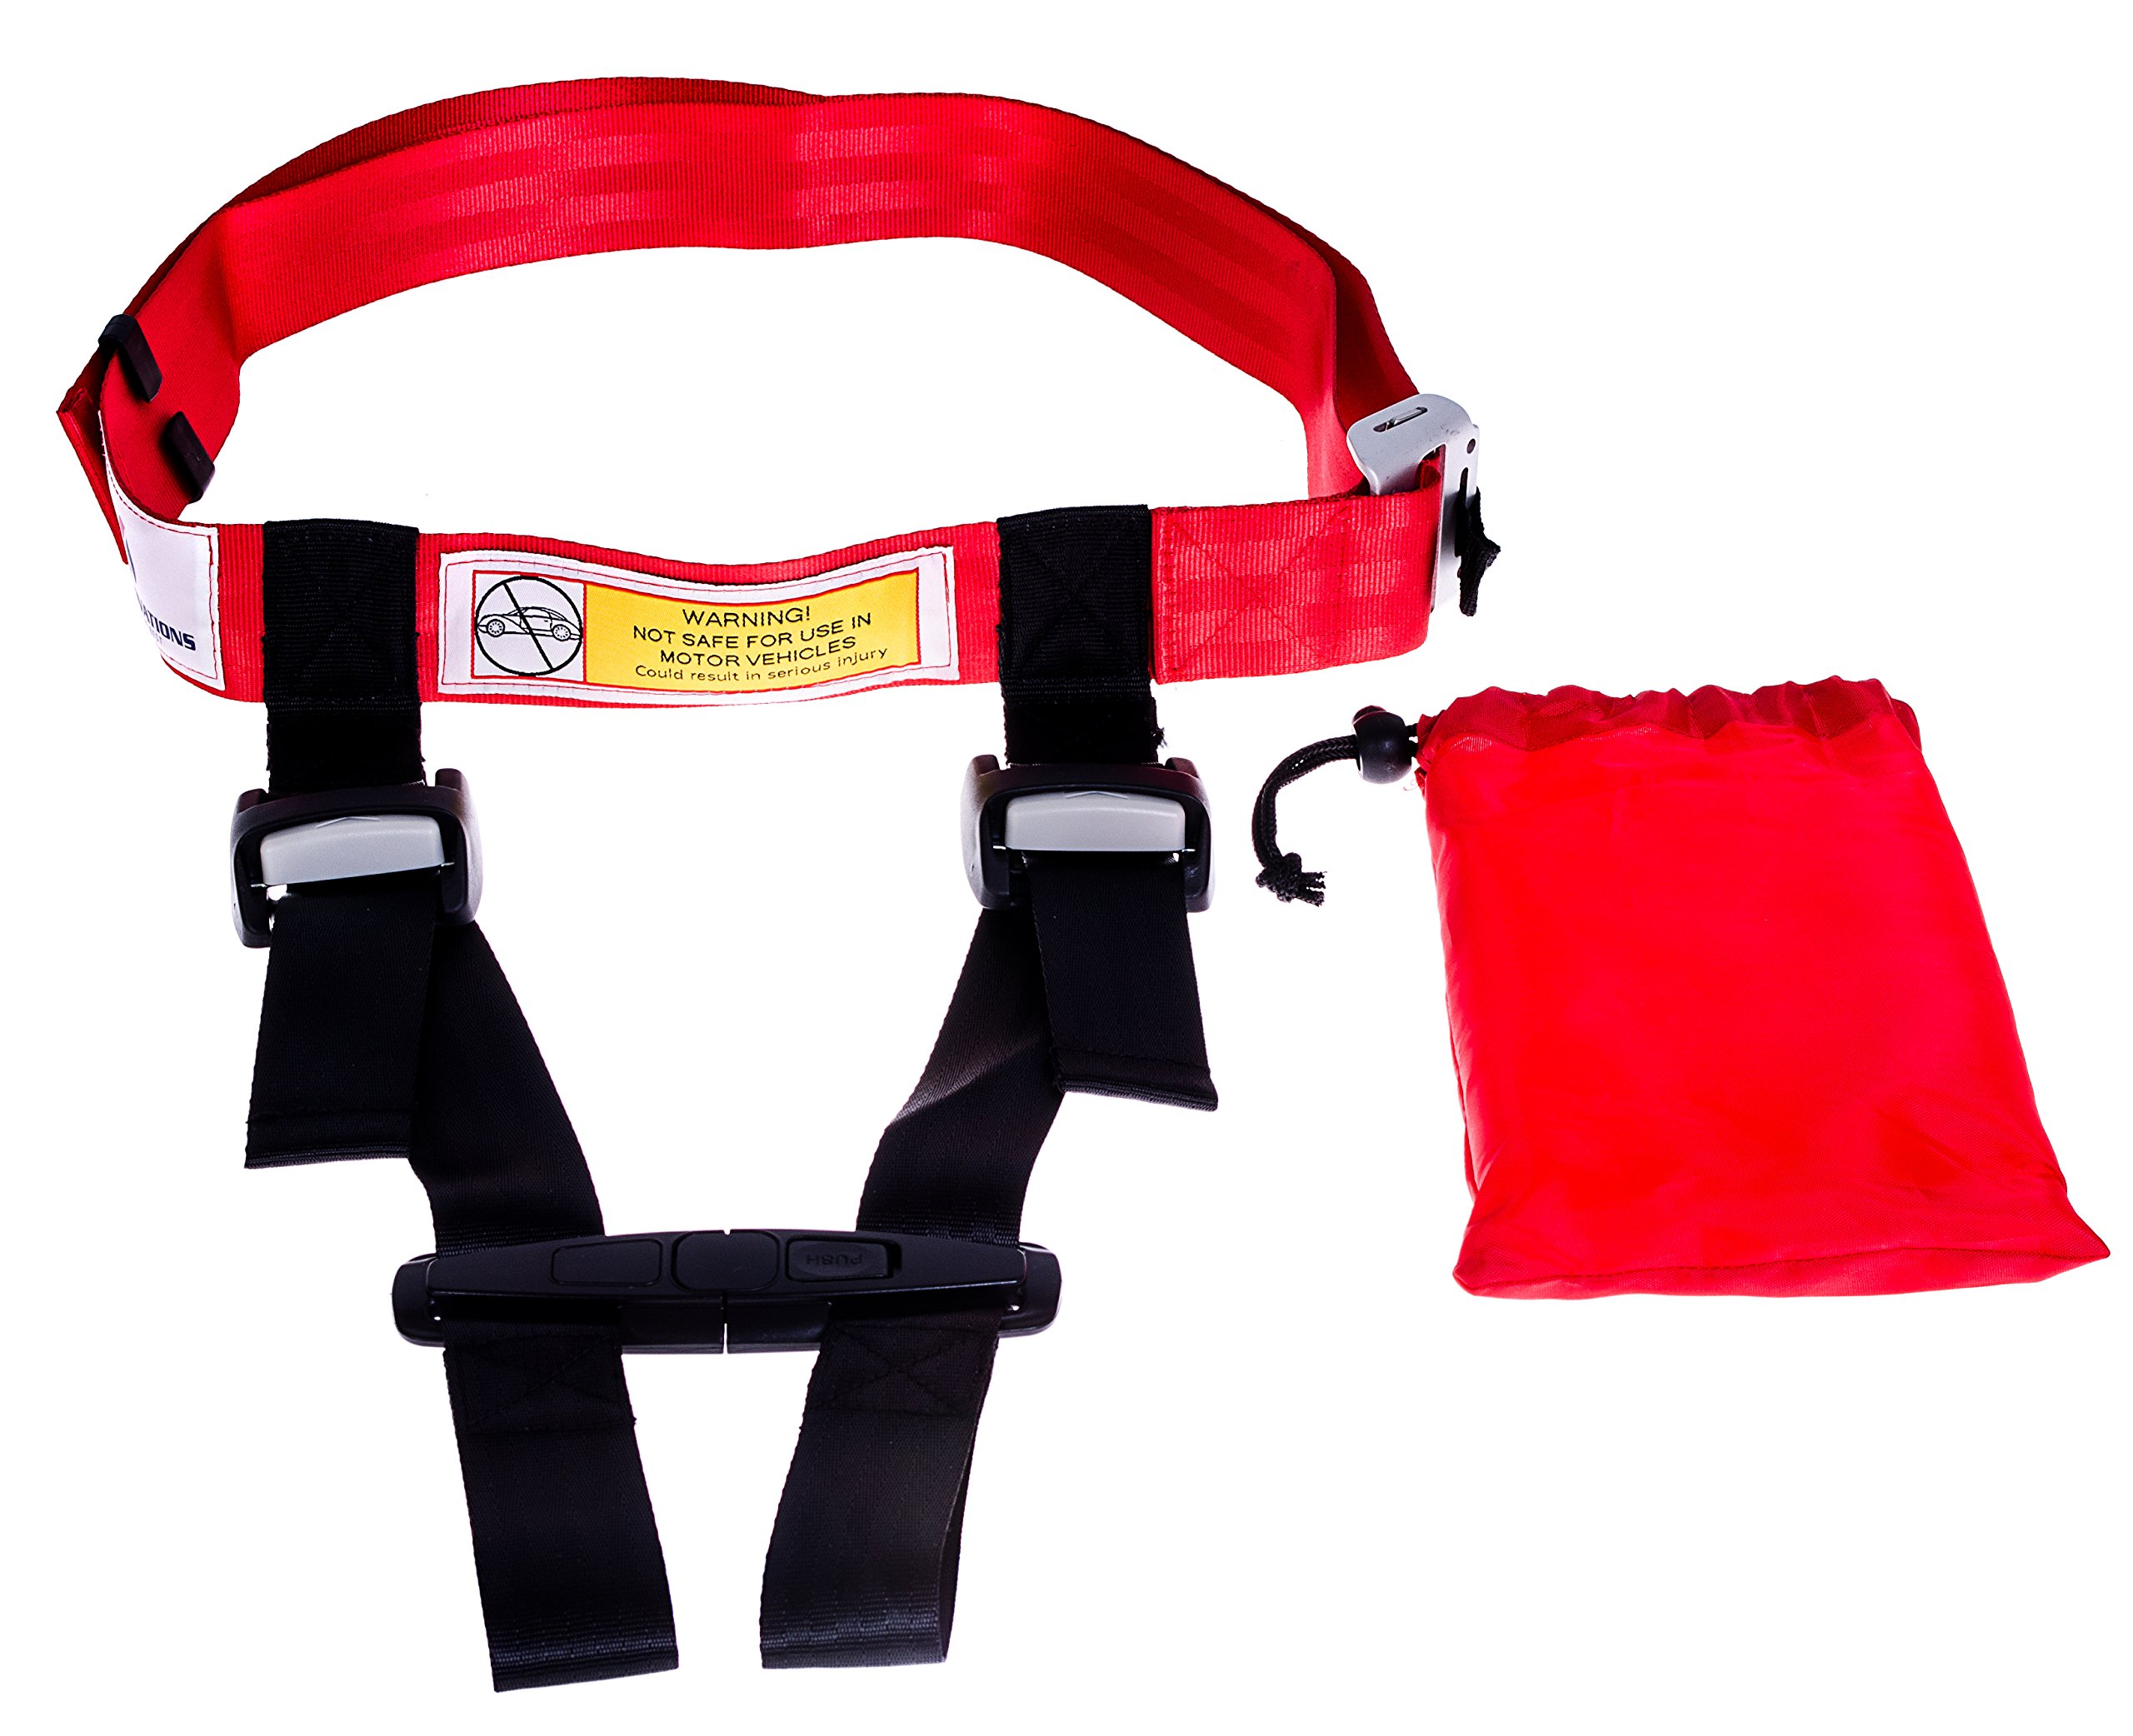 Airplane Safety Harness with Free Carry Bag - Baby Airplane Travel Harness for Safe Flying with Baby - Child Safety Harness for Air Travel, 1pcs - Specifically for Aviation Travel